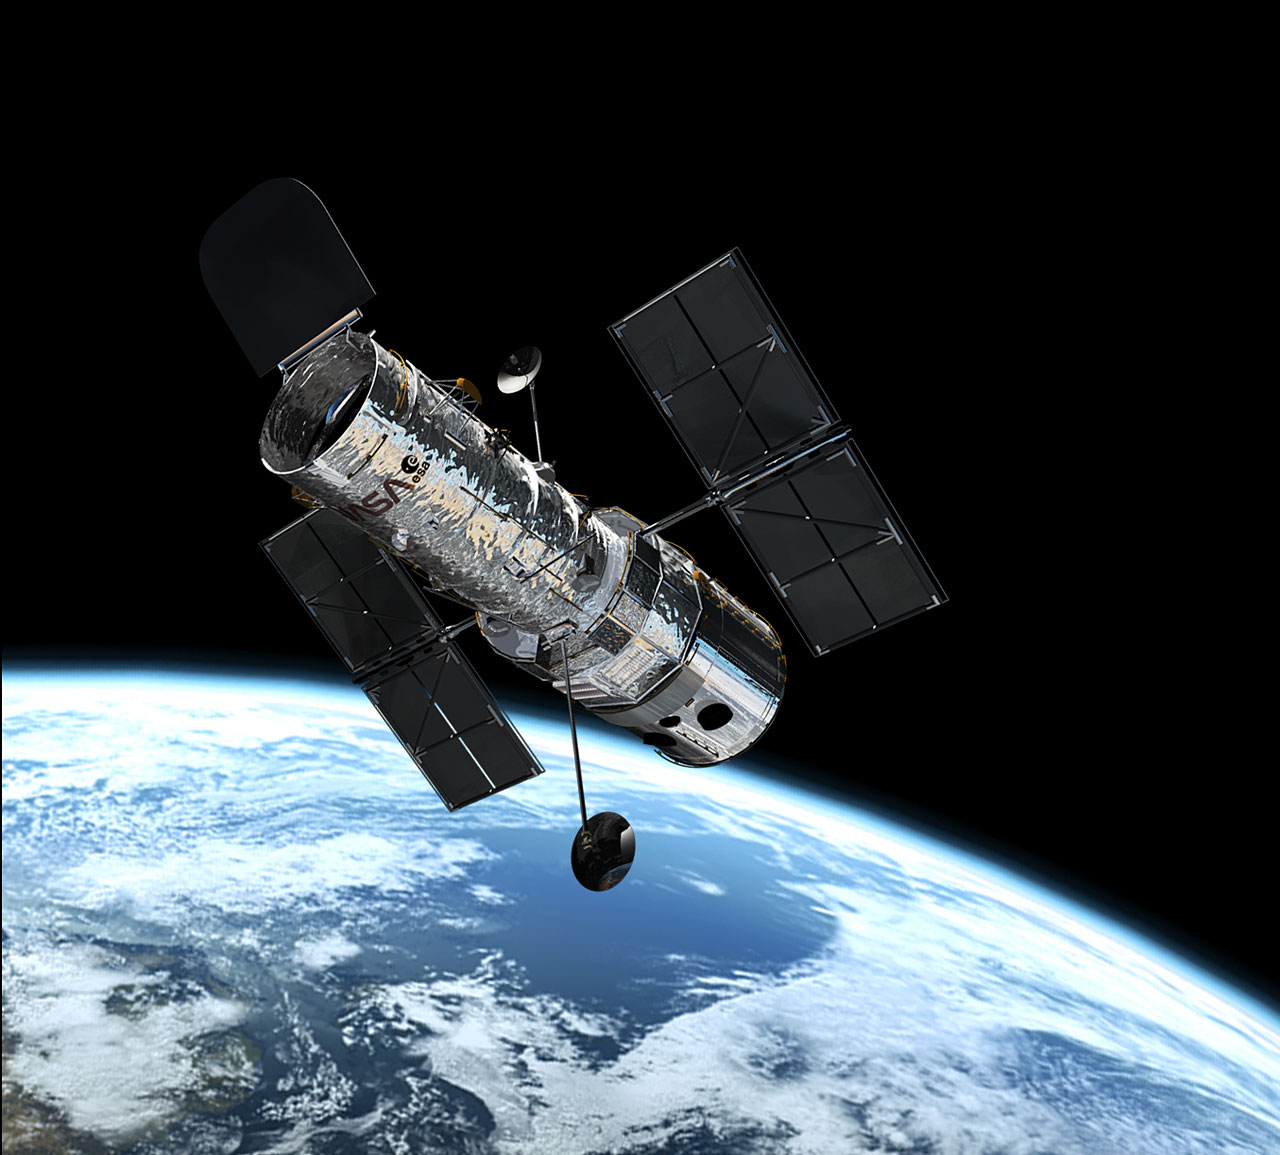 hubble telescope images of space - photo #31